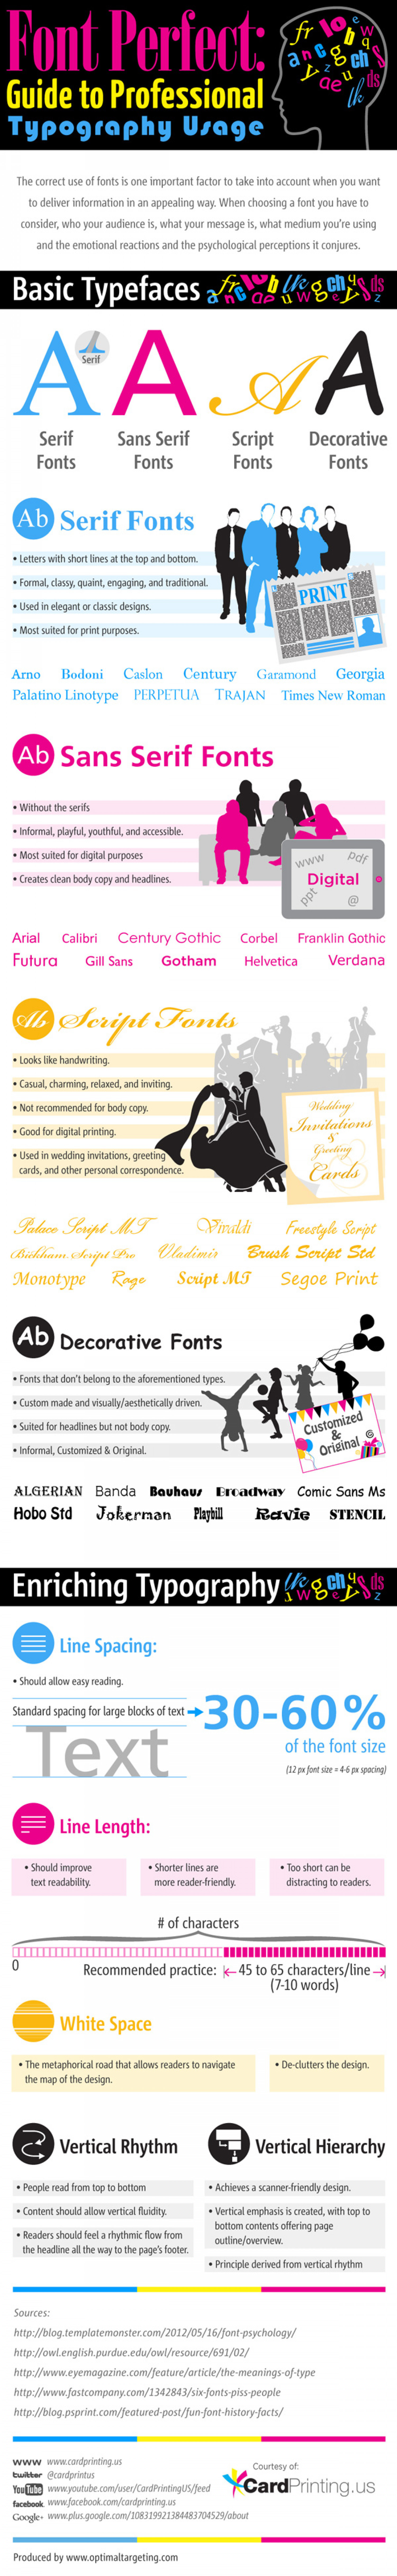 Font Perfect: Guide to Professional Typography Usage Infographic